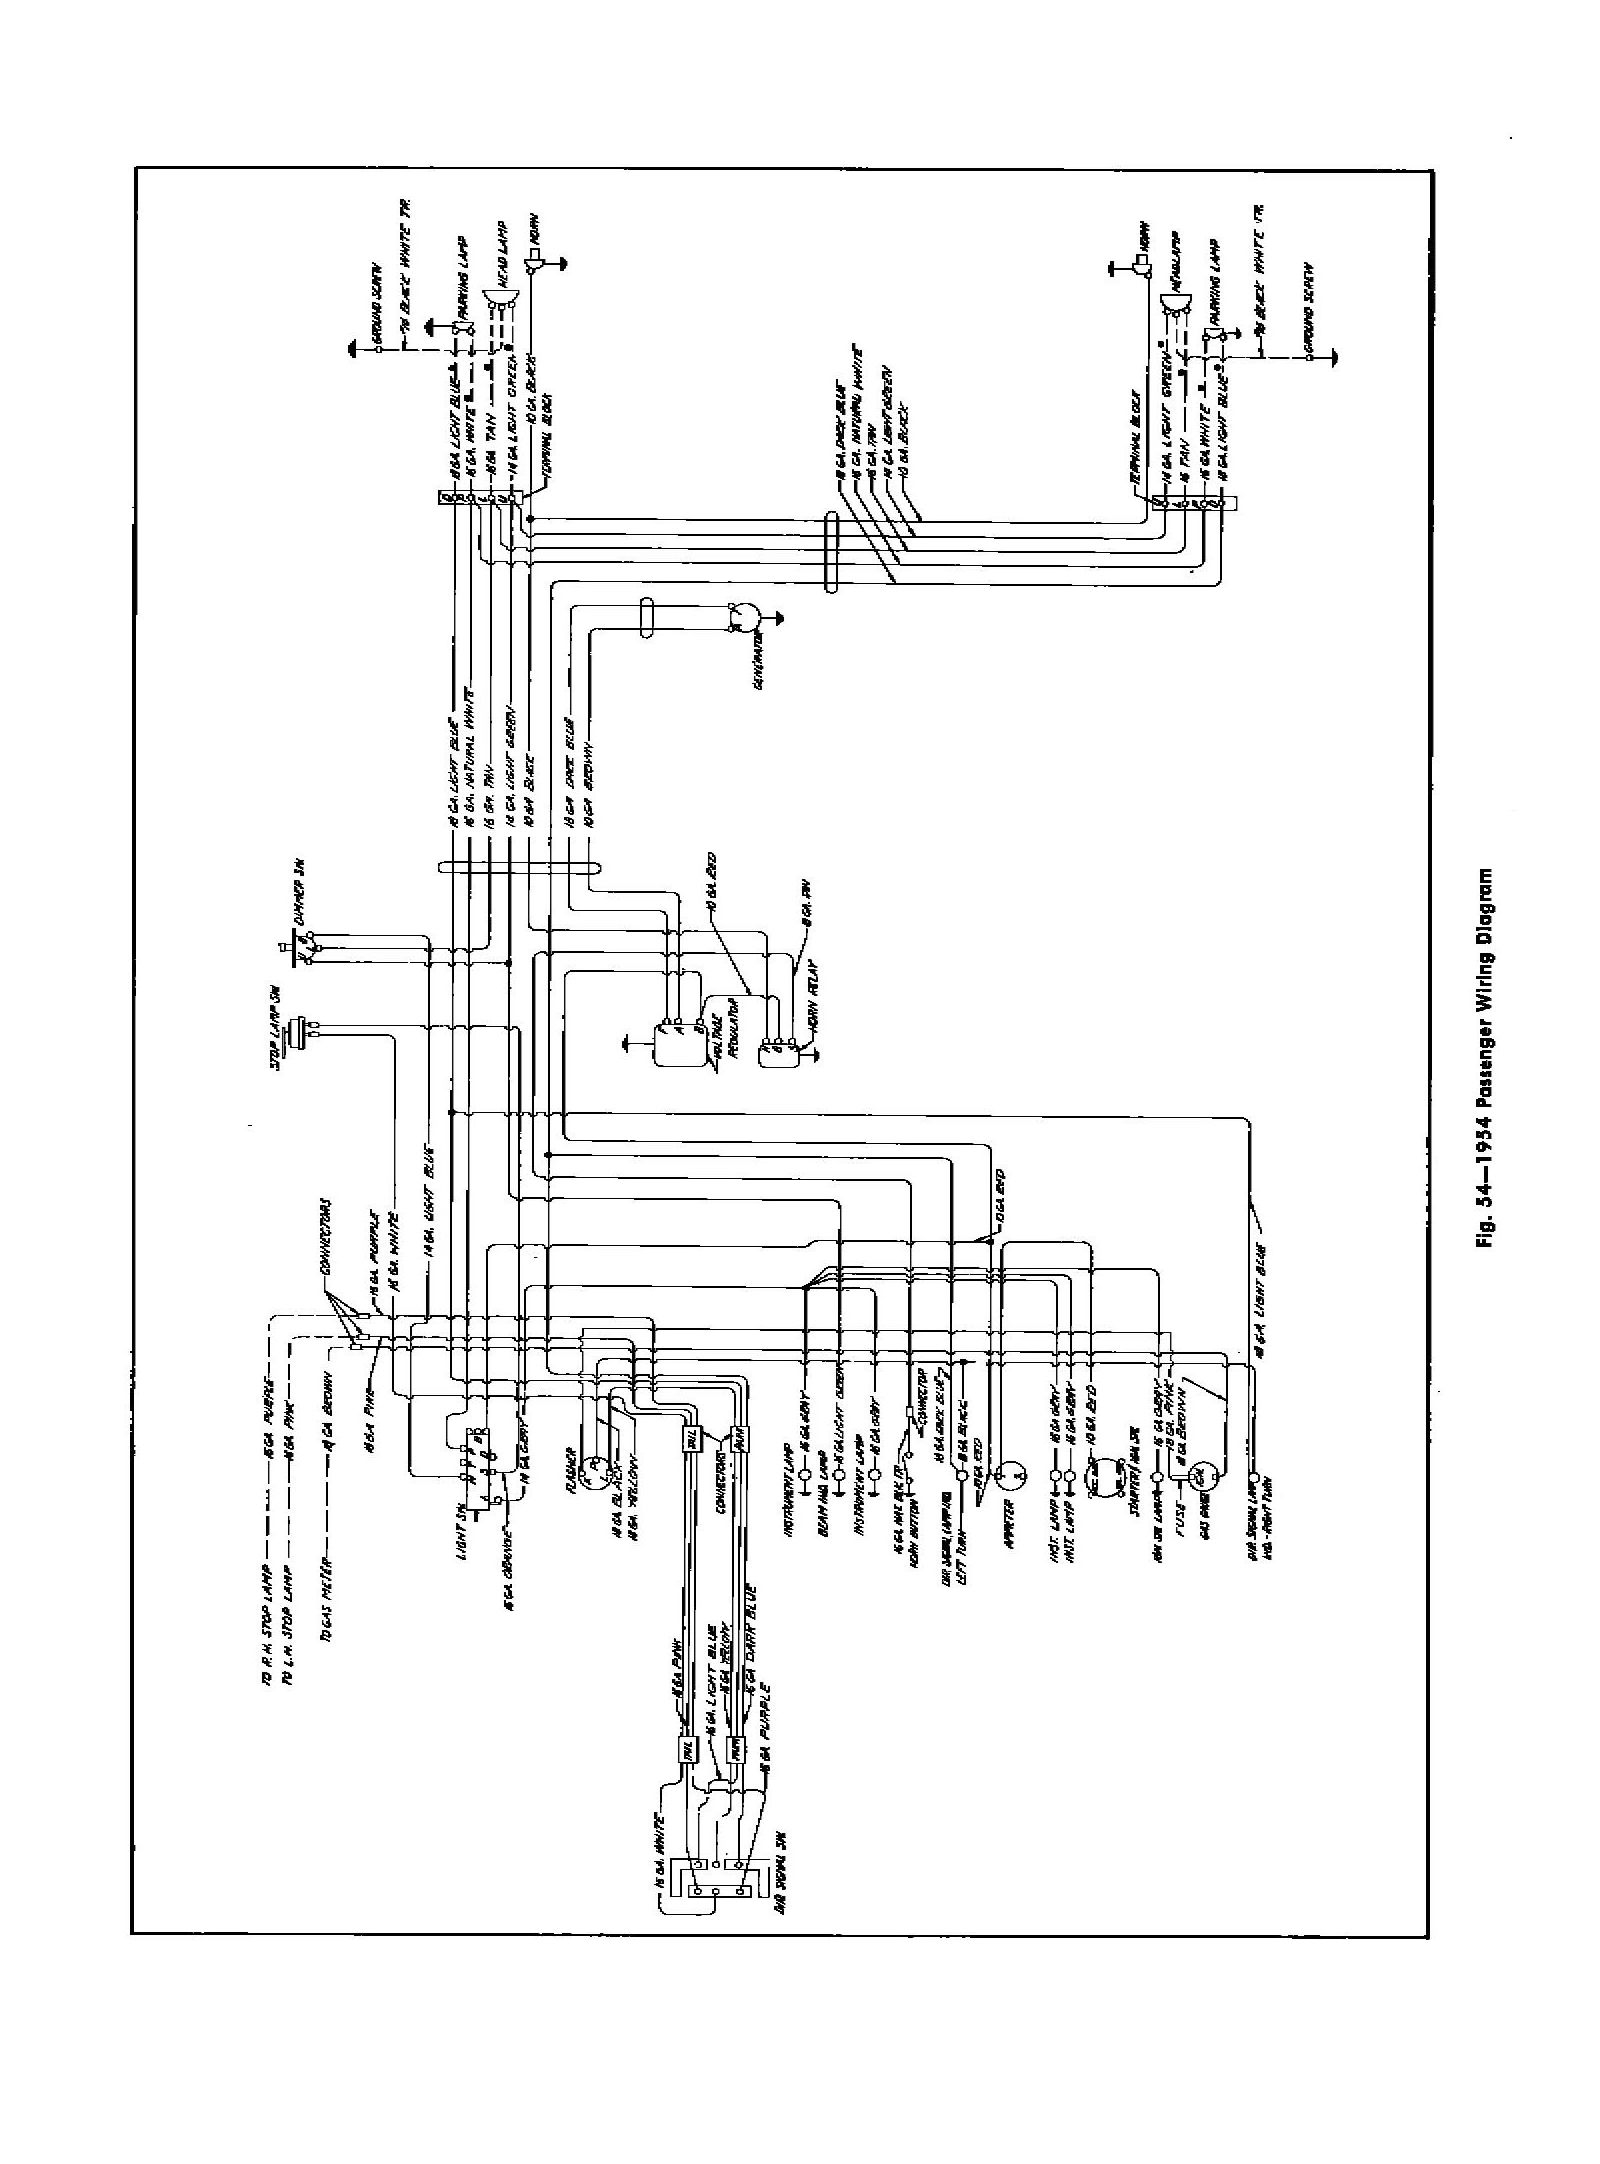 hight resolution of 1953 chevy truck wiring harness wiring diagrams bib 1953 chevrolet wiring harness wiring diagram load 1953